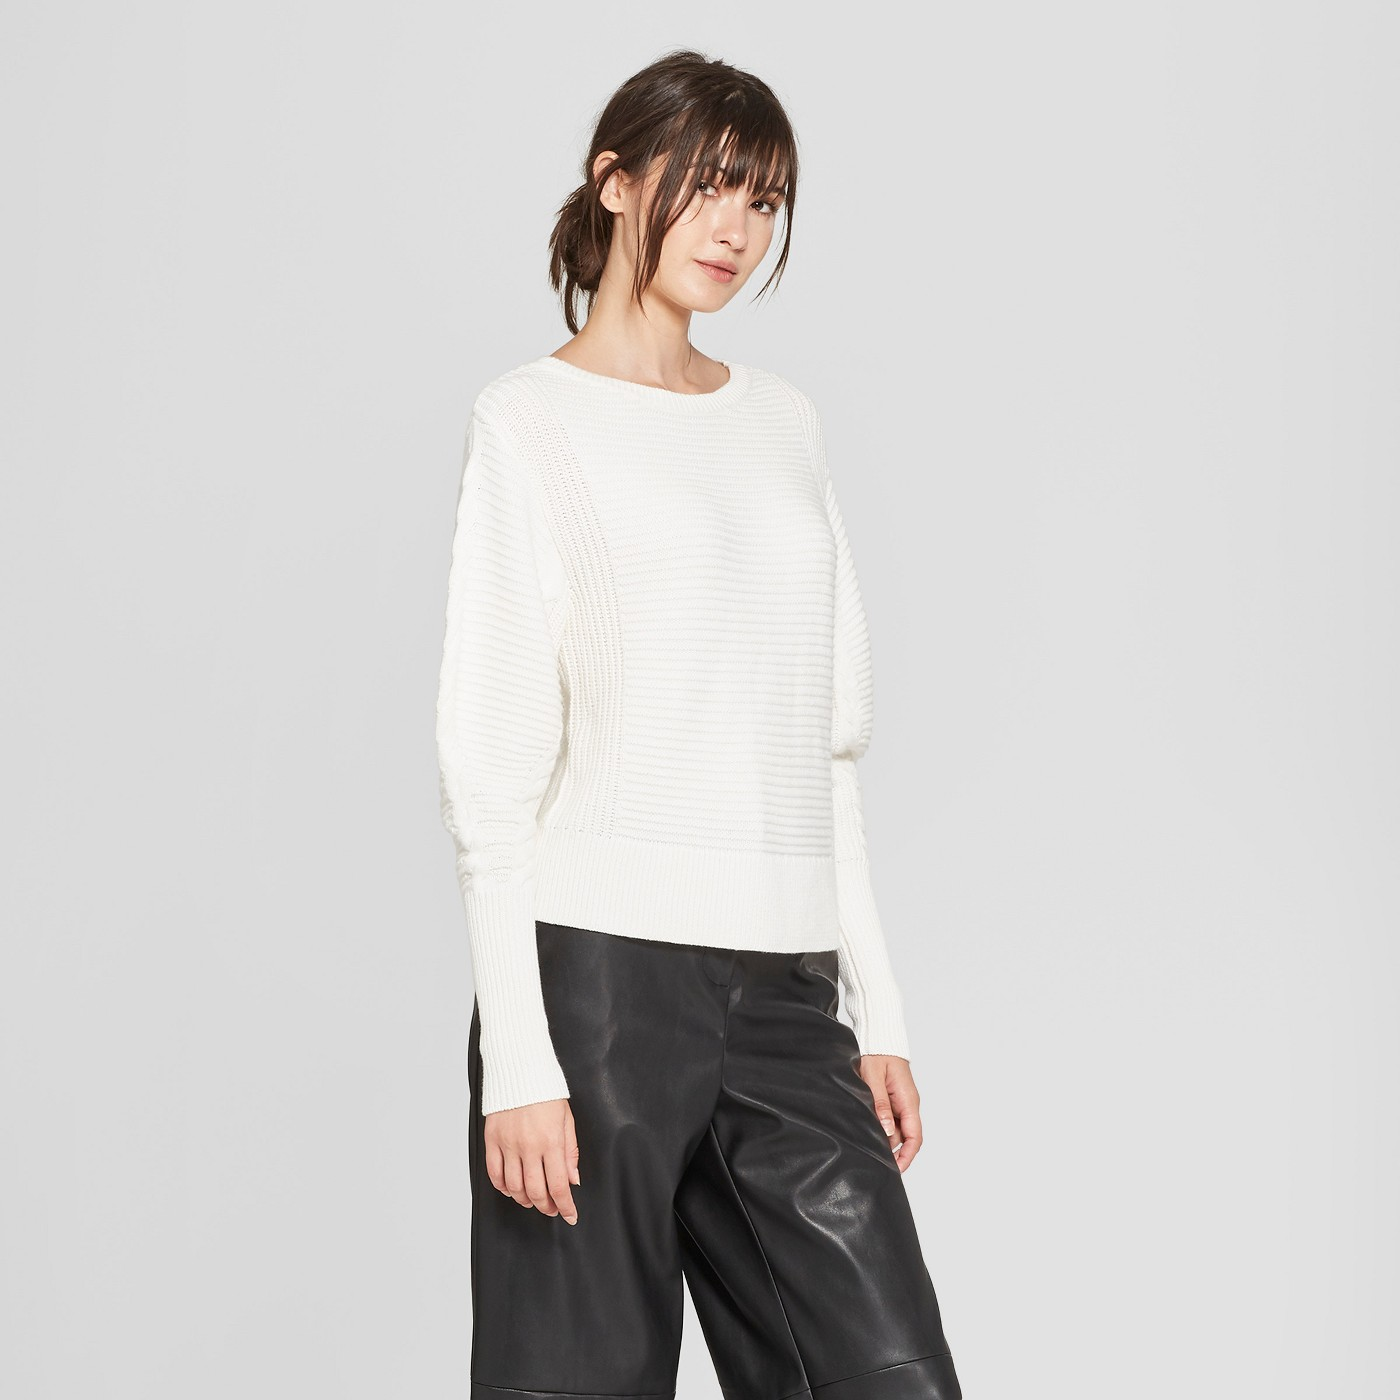 a0570b41f7711 https://www.refinery29.com/en-us/target-winter-clothing-2018 2018-10 ...